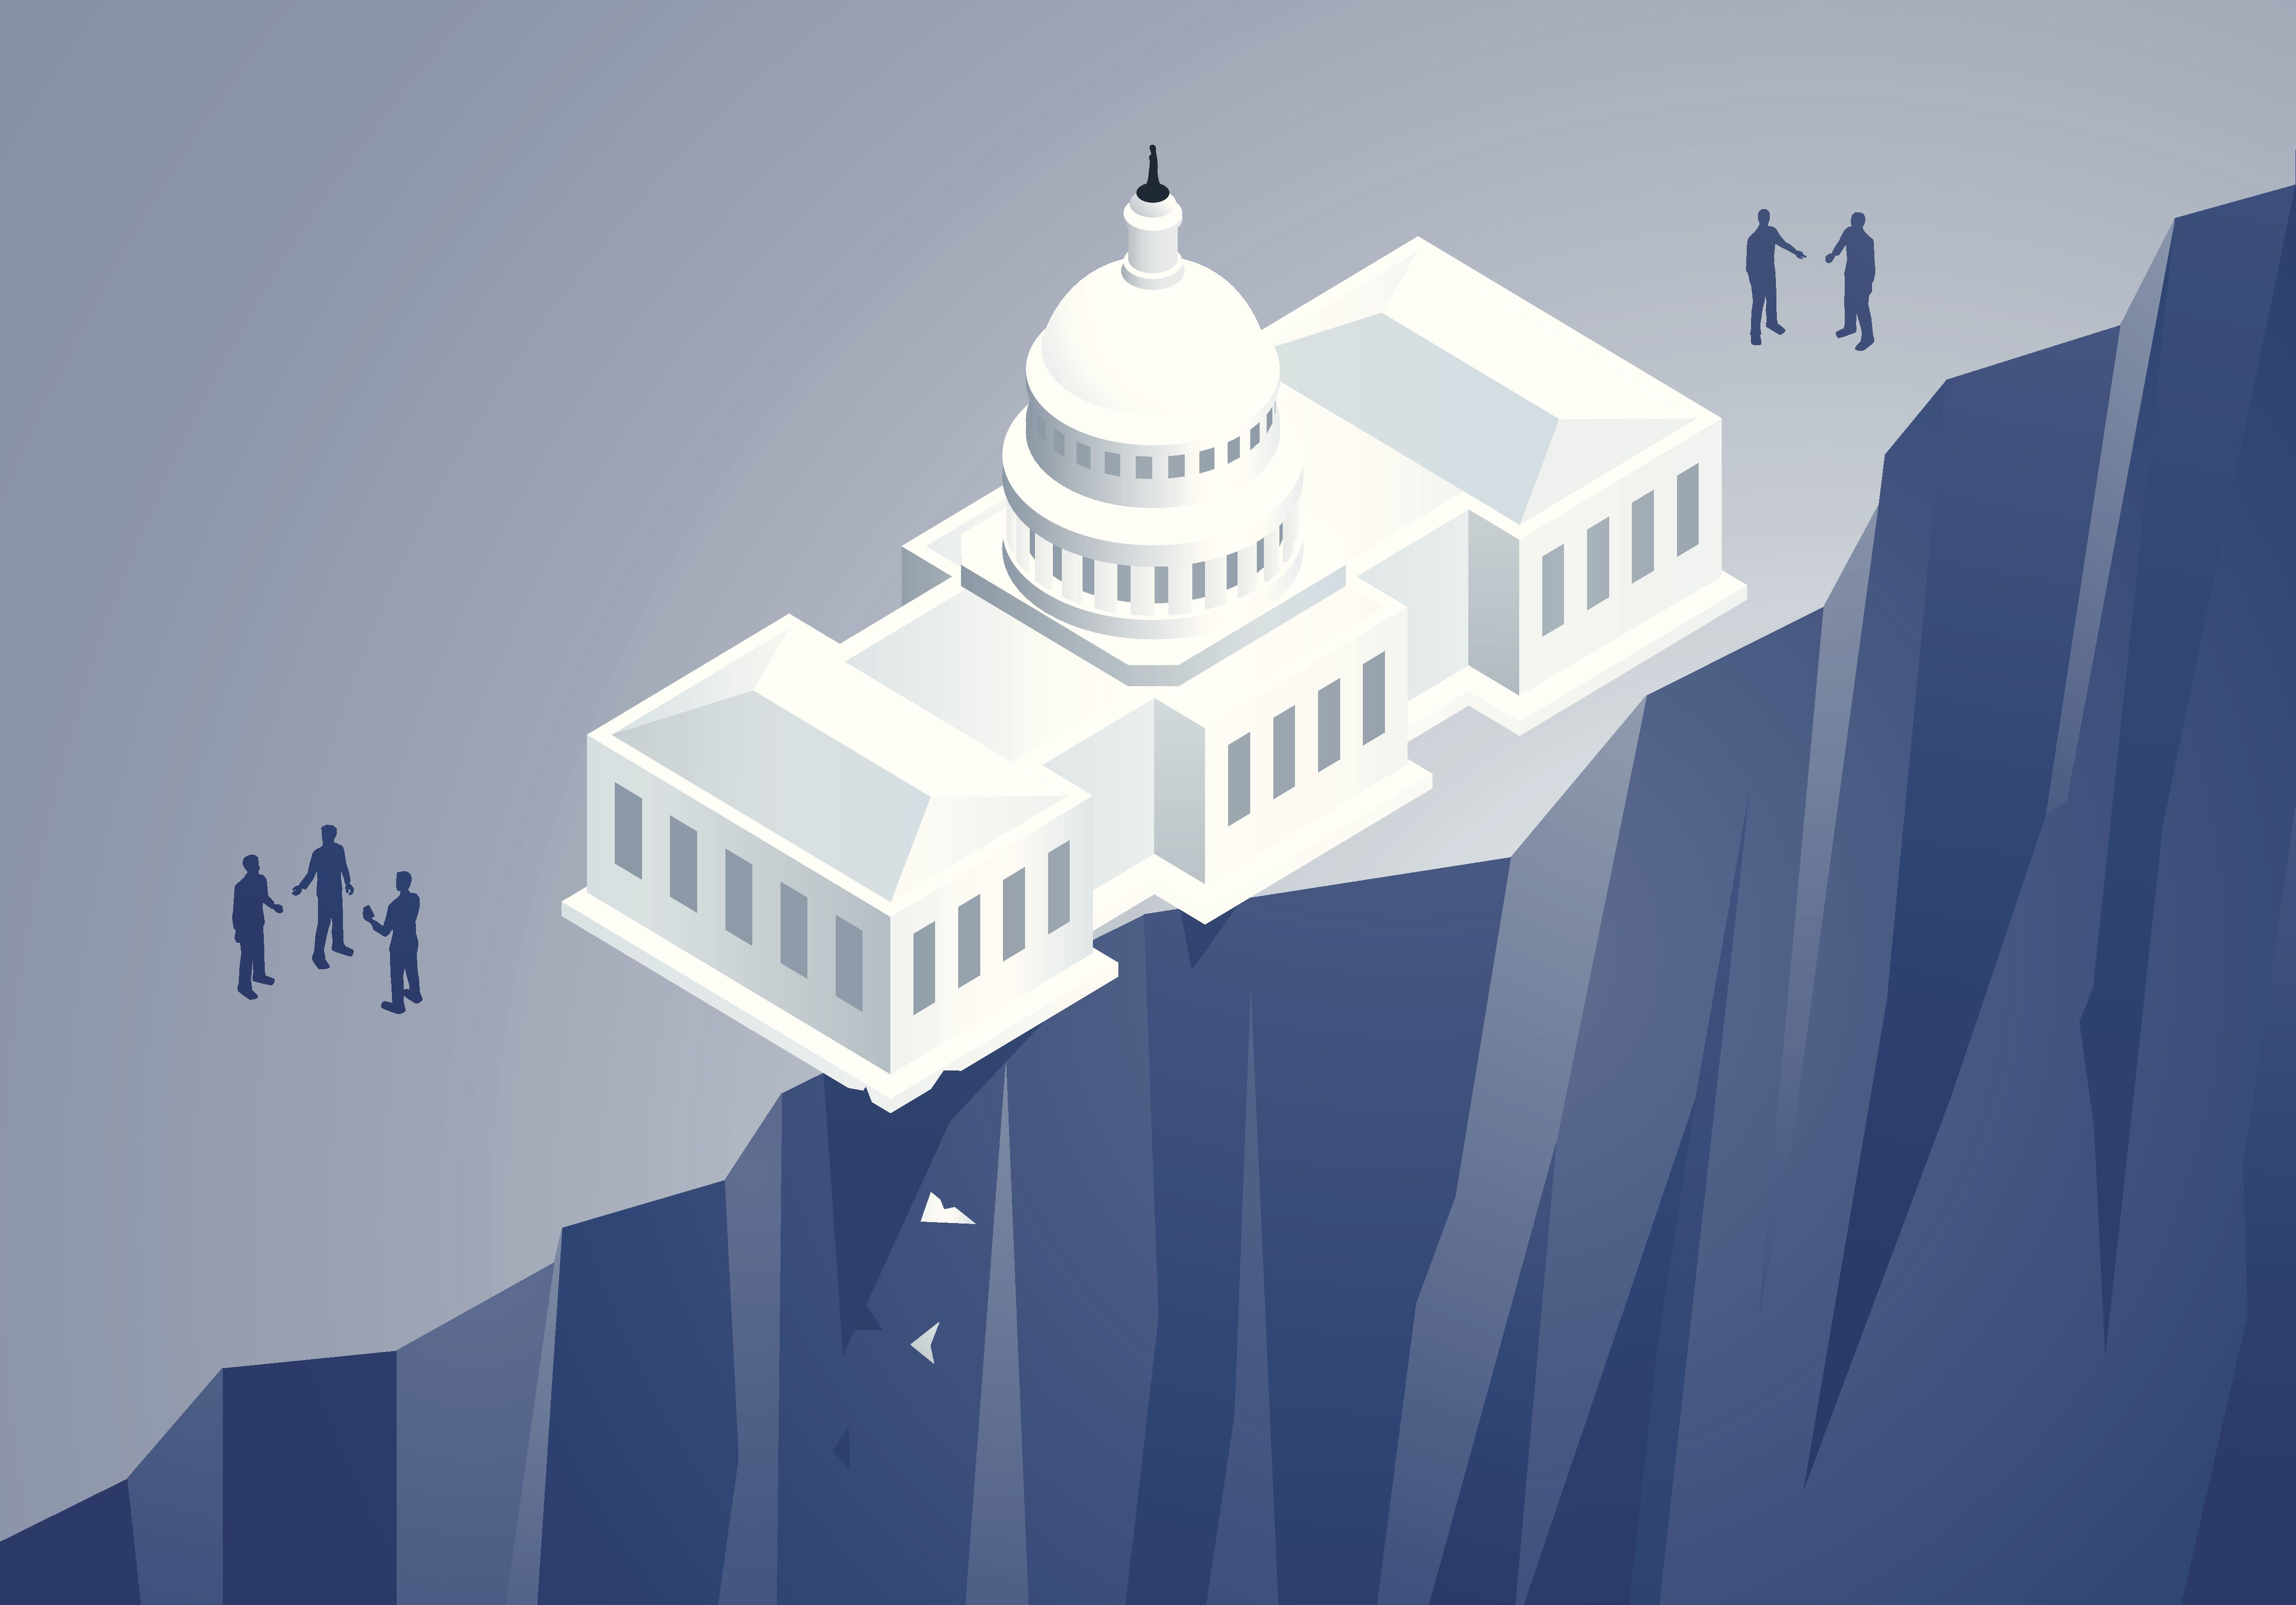 """fiscal cliff what is it and The """"fiscal cliff"""" is what federal reserve board chairman ben bernanke has called the many major fiscal events that could happen simultaneously at the close of 2012 and the dawning of 2013 ."""